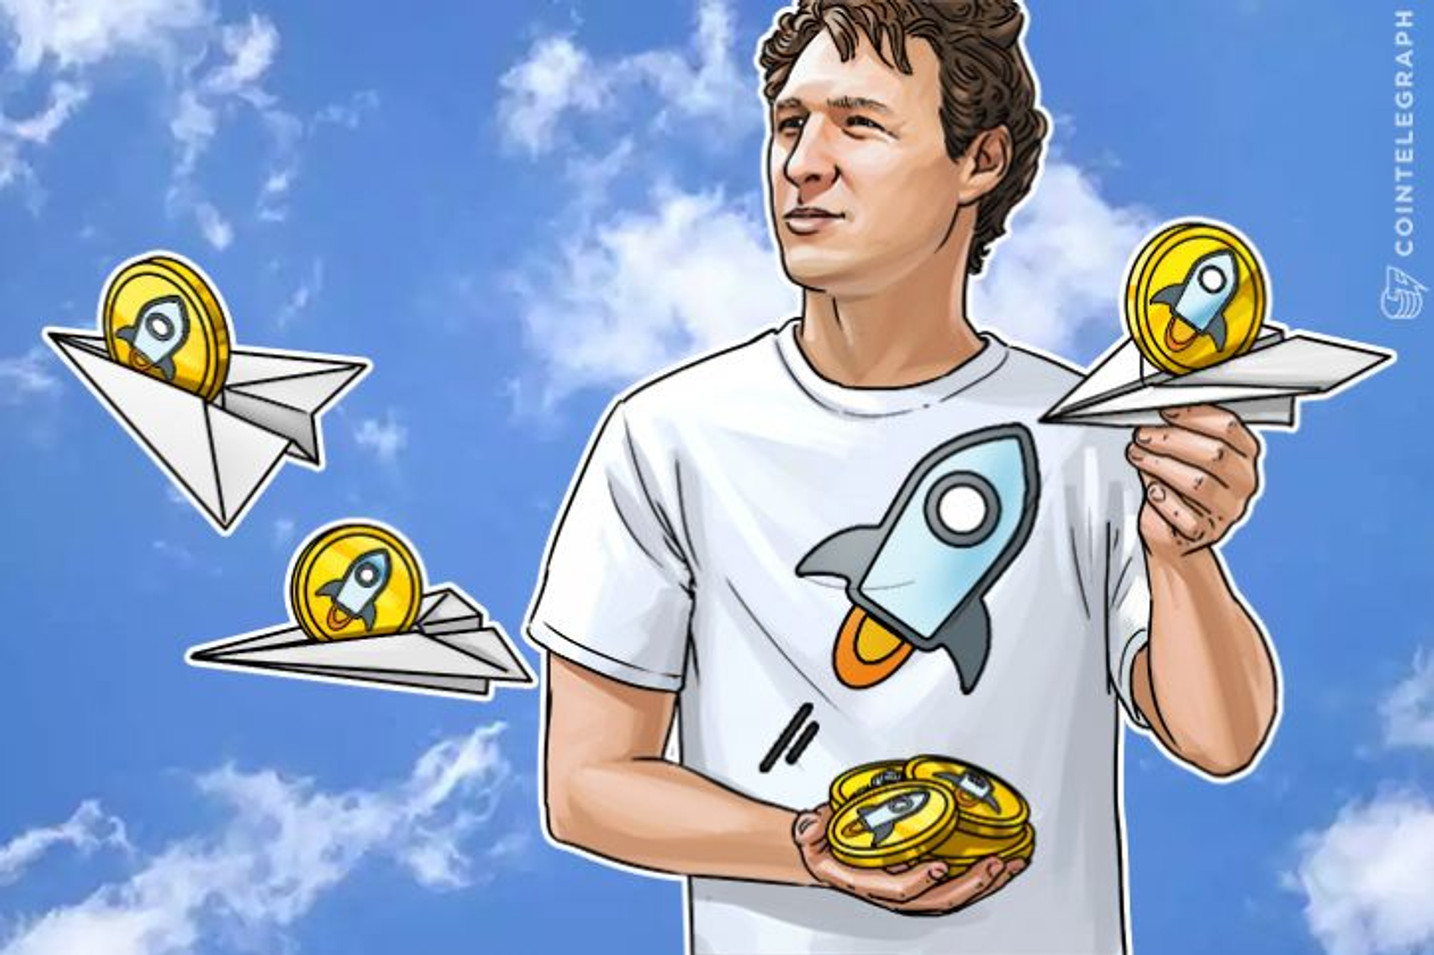 Bitcoin Holders Can Claim Free 16 Bln Stellar Lumen Tokens